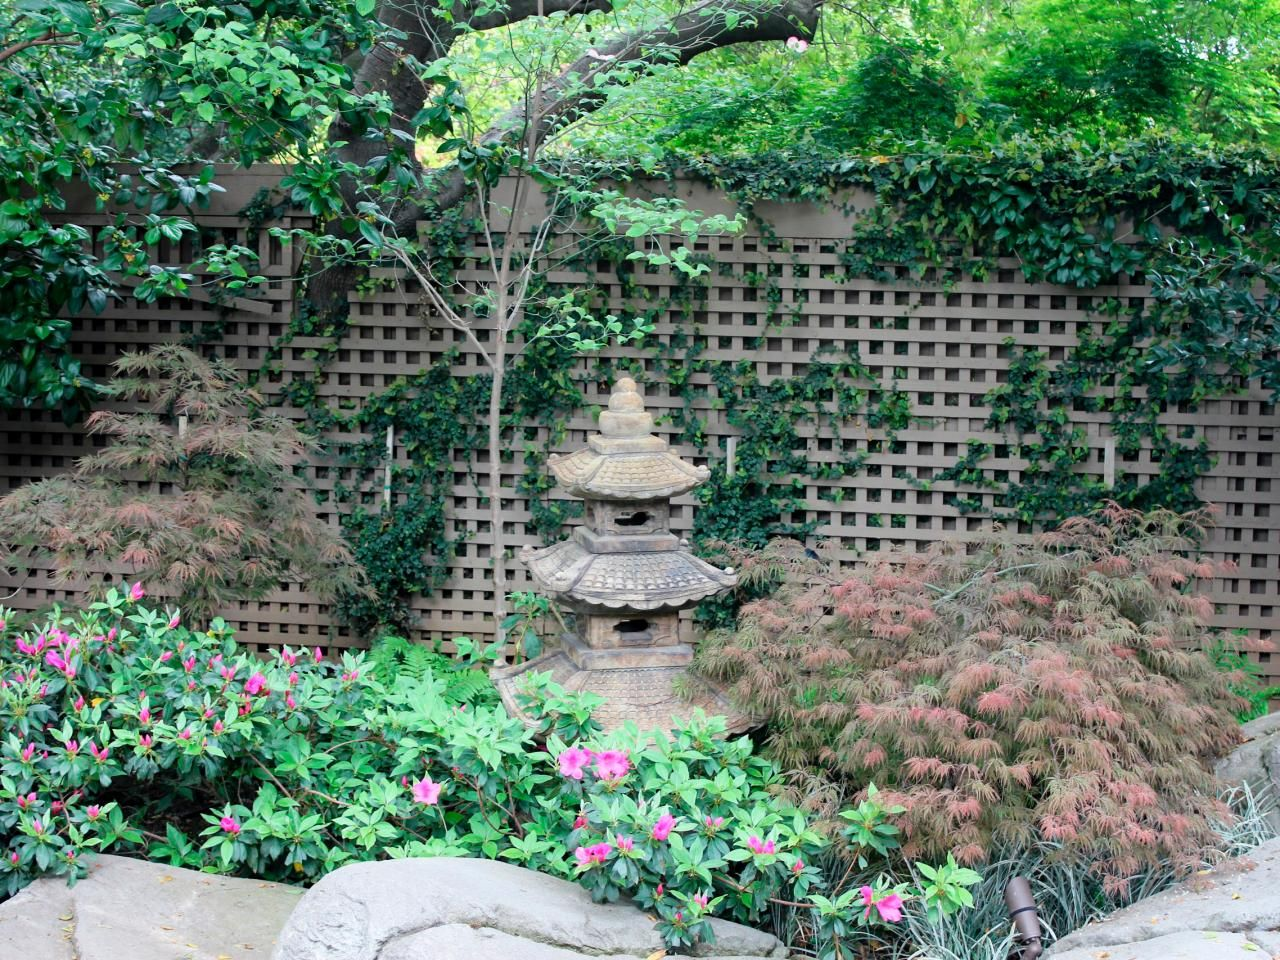 A Sprawling Trellis With Vines Provides Privacy For A Sunny Backyard. A  Garden Statue Is